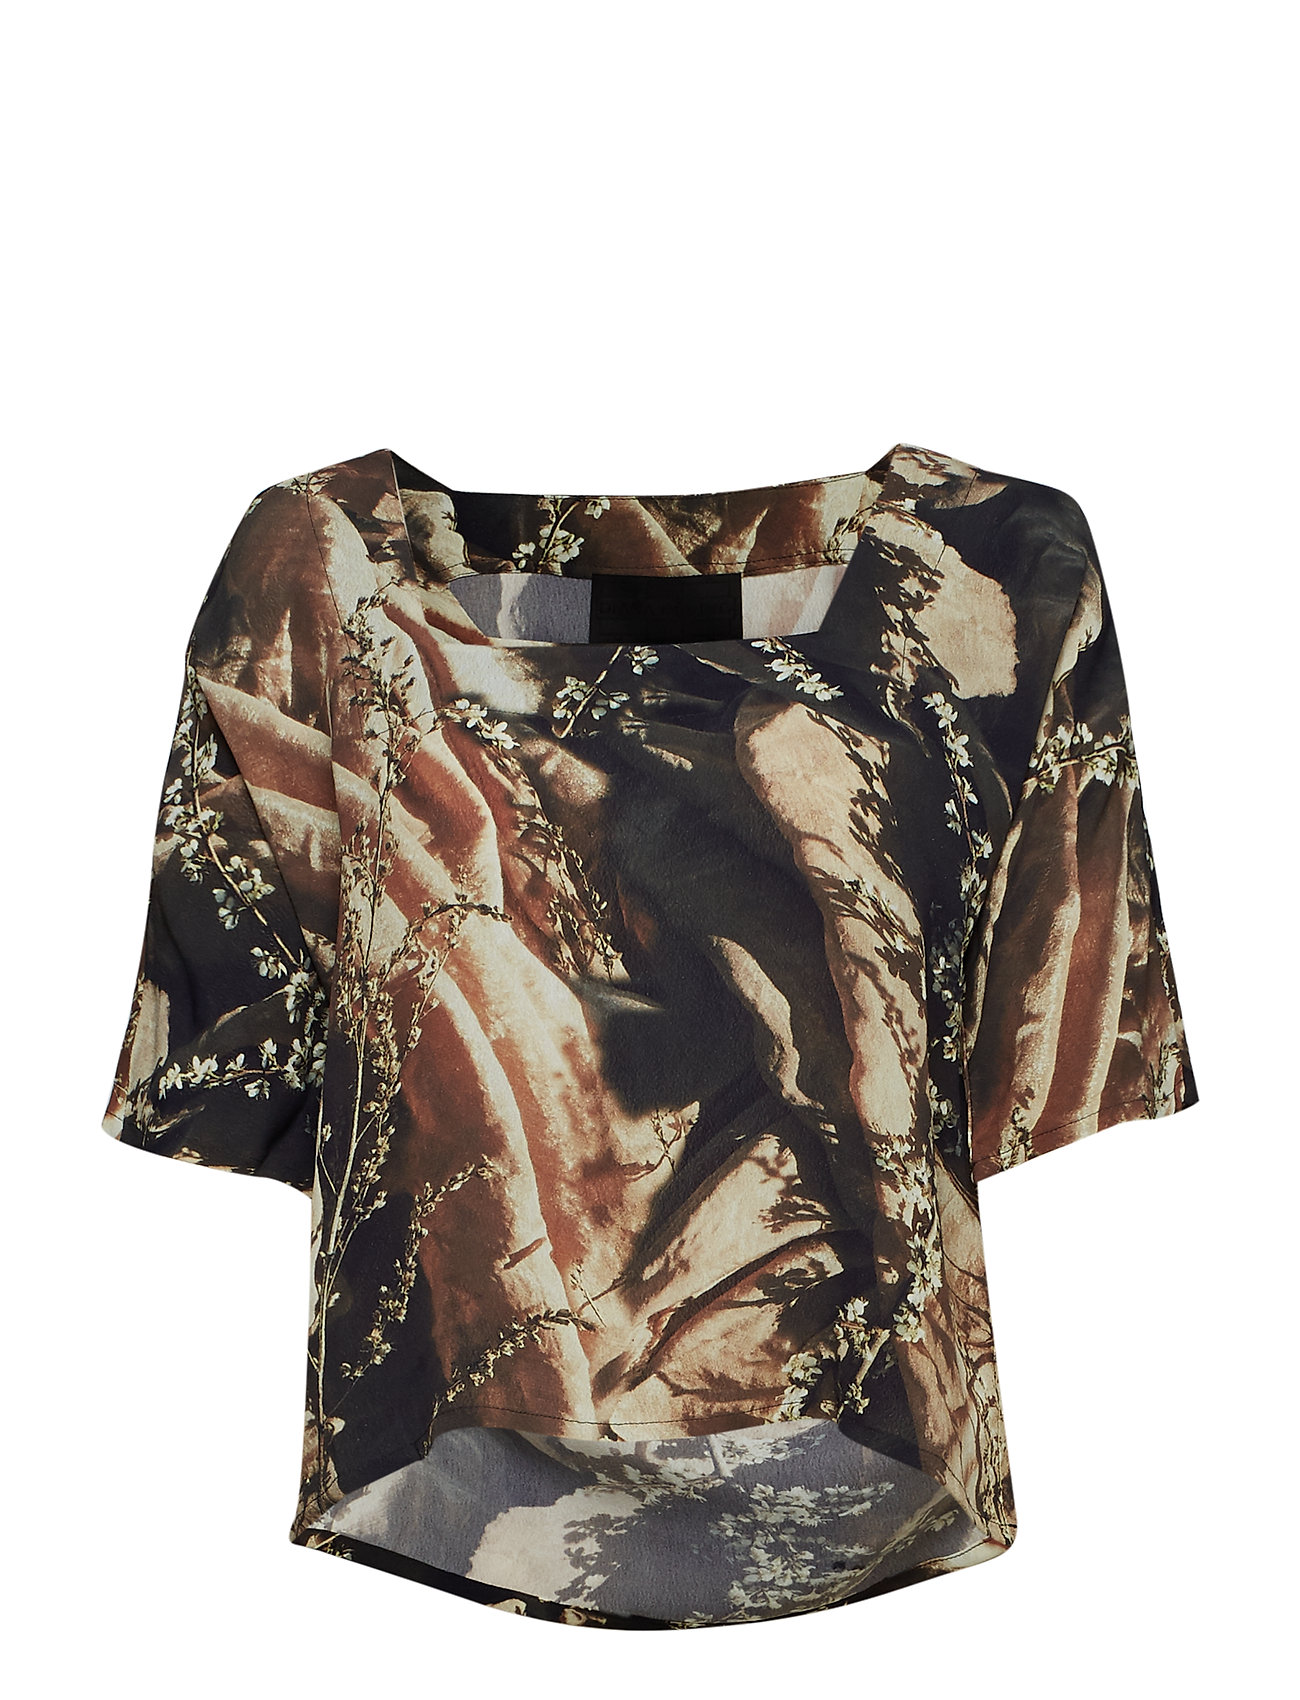 Diana Orving Square Neck Top - FLOWERS